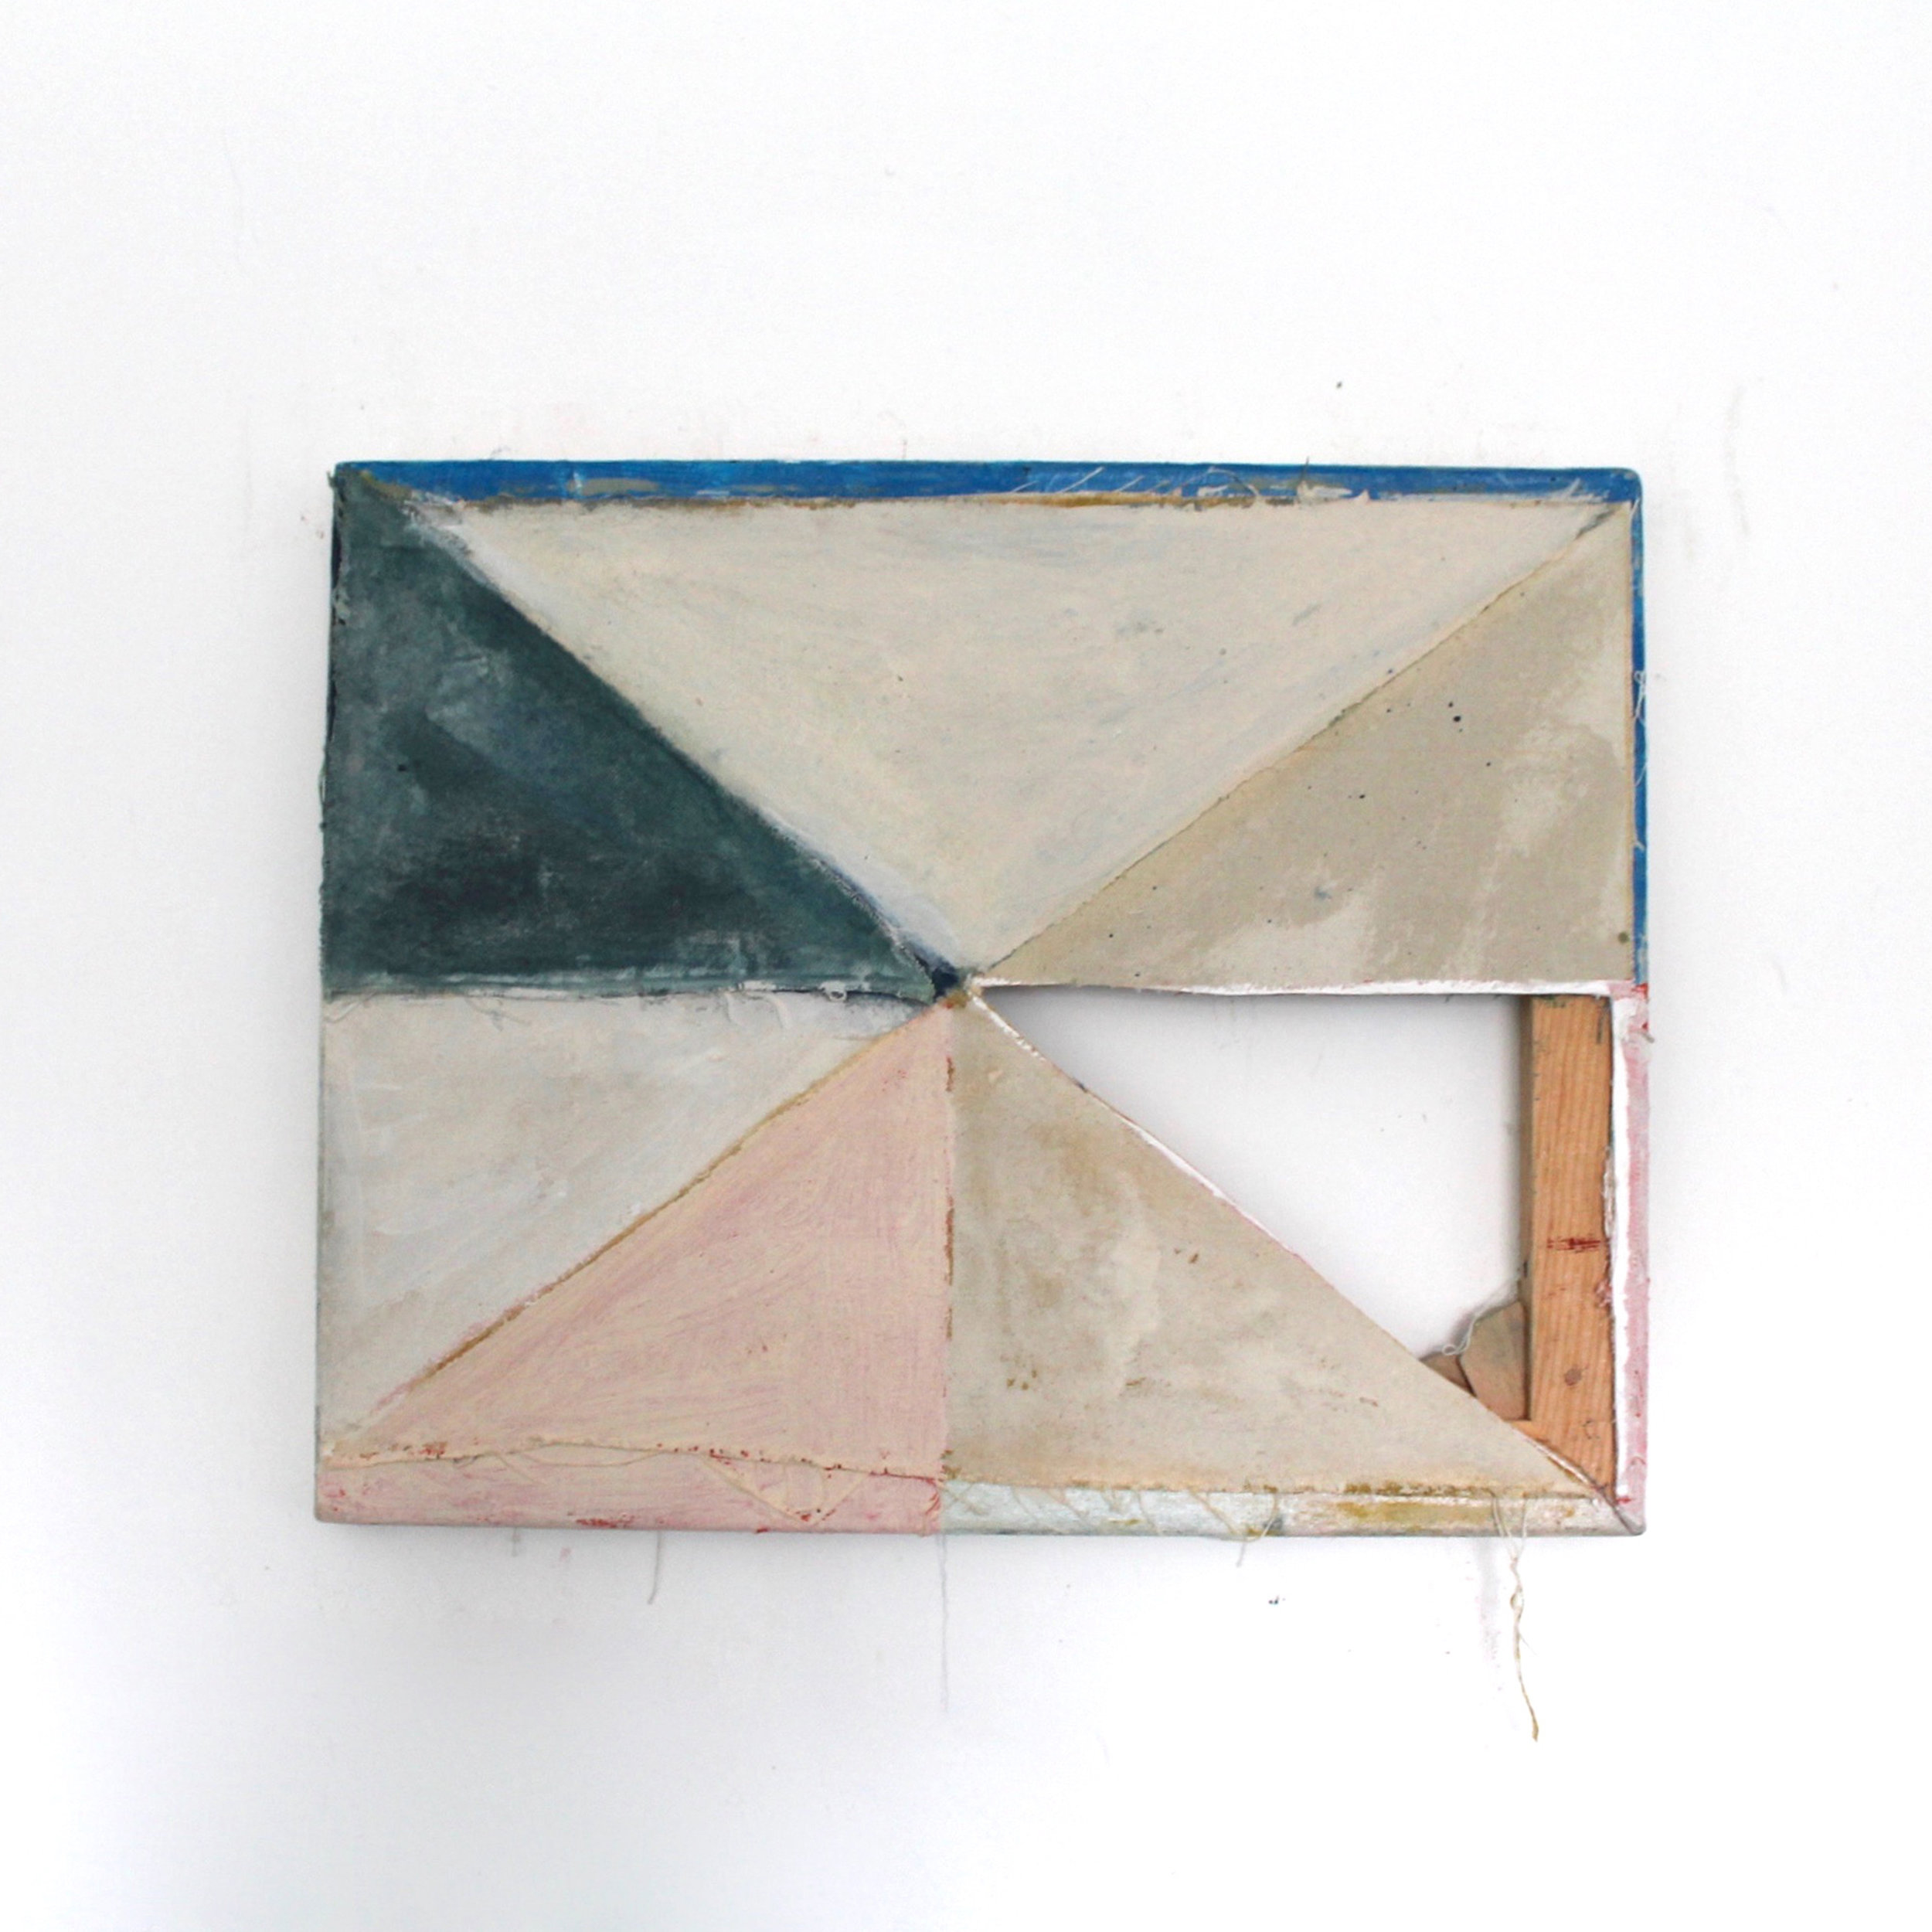 Time and Time Again  Oil, canvas, wood, staples, glue 16.14 x 13 inches 41 x 33 cm 2018